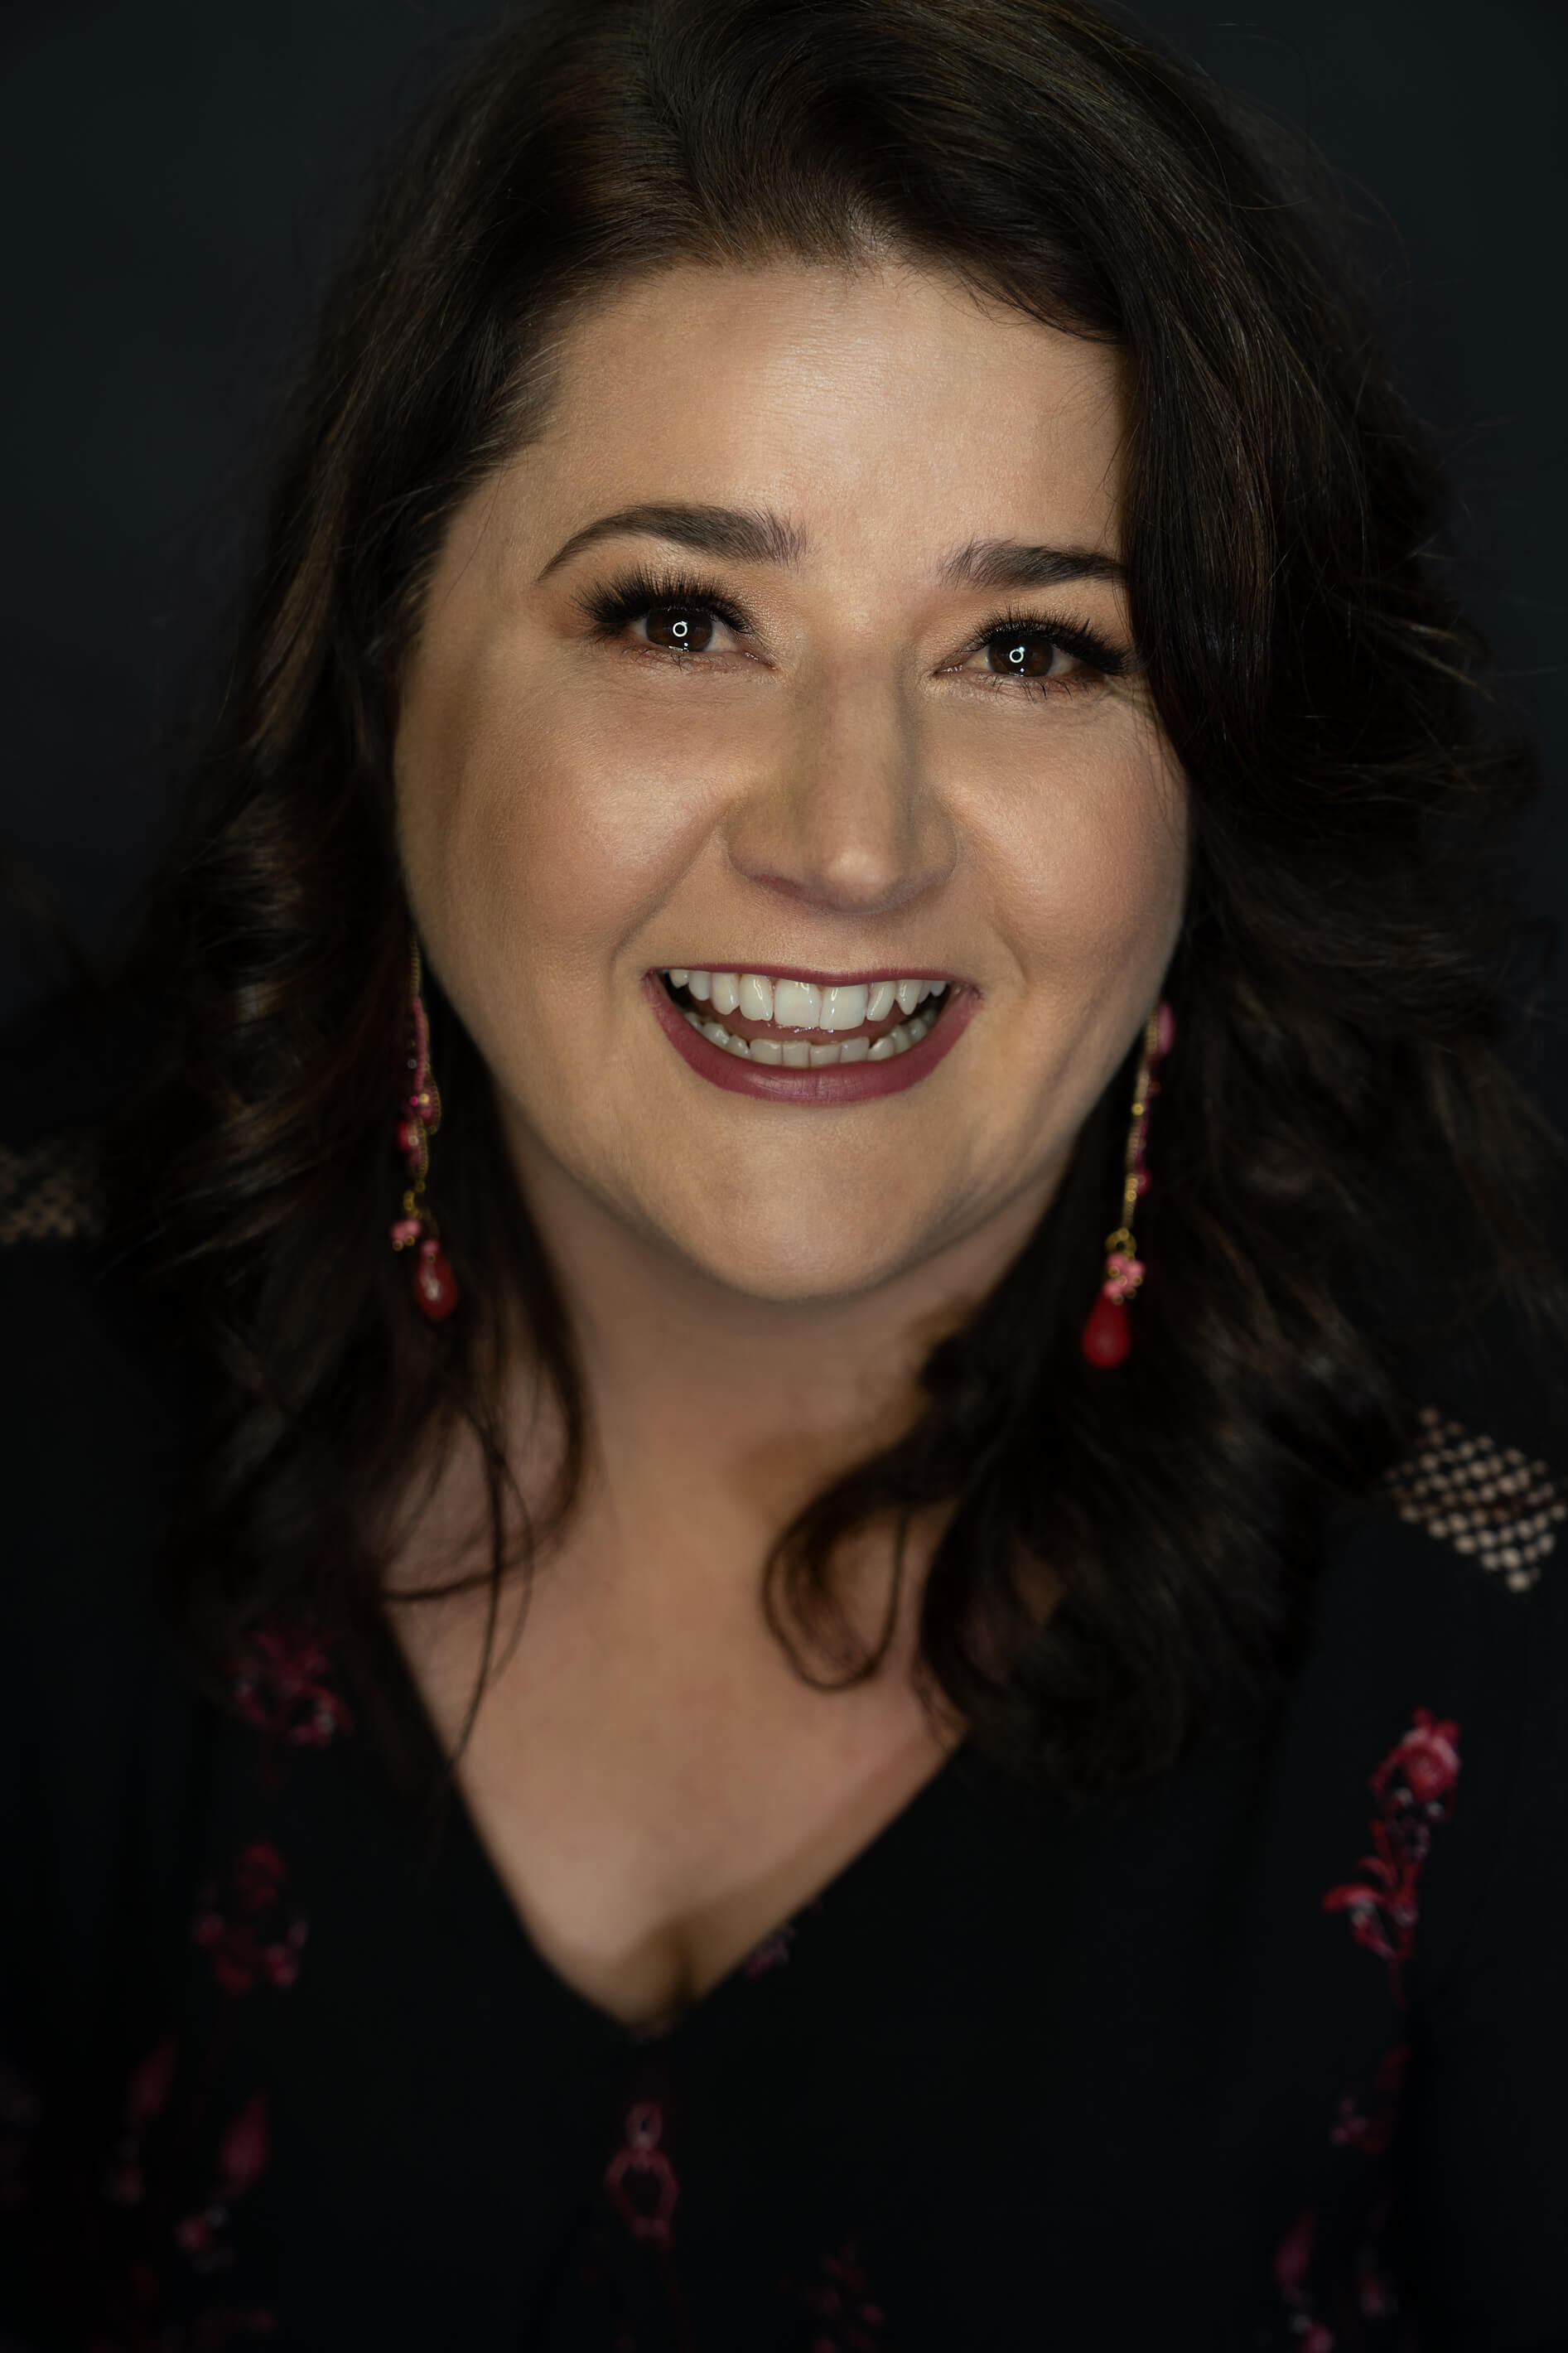 Nerissa Bentley - experienced health and medical writer